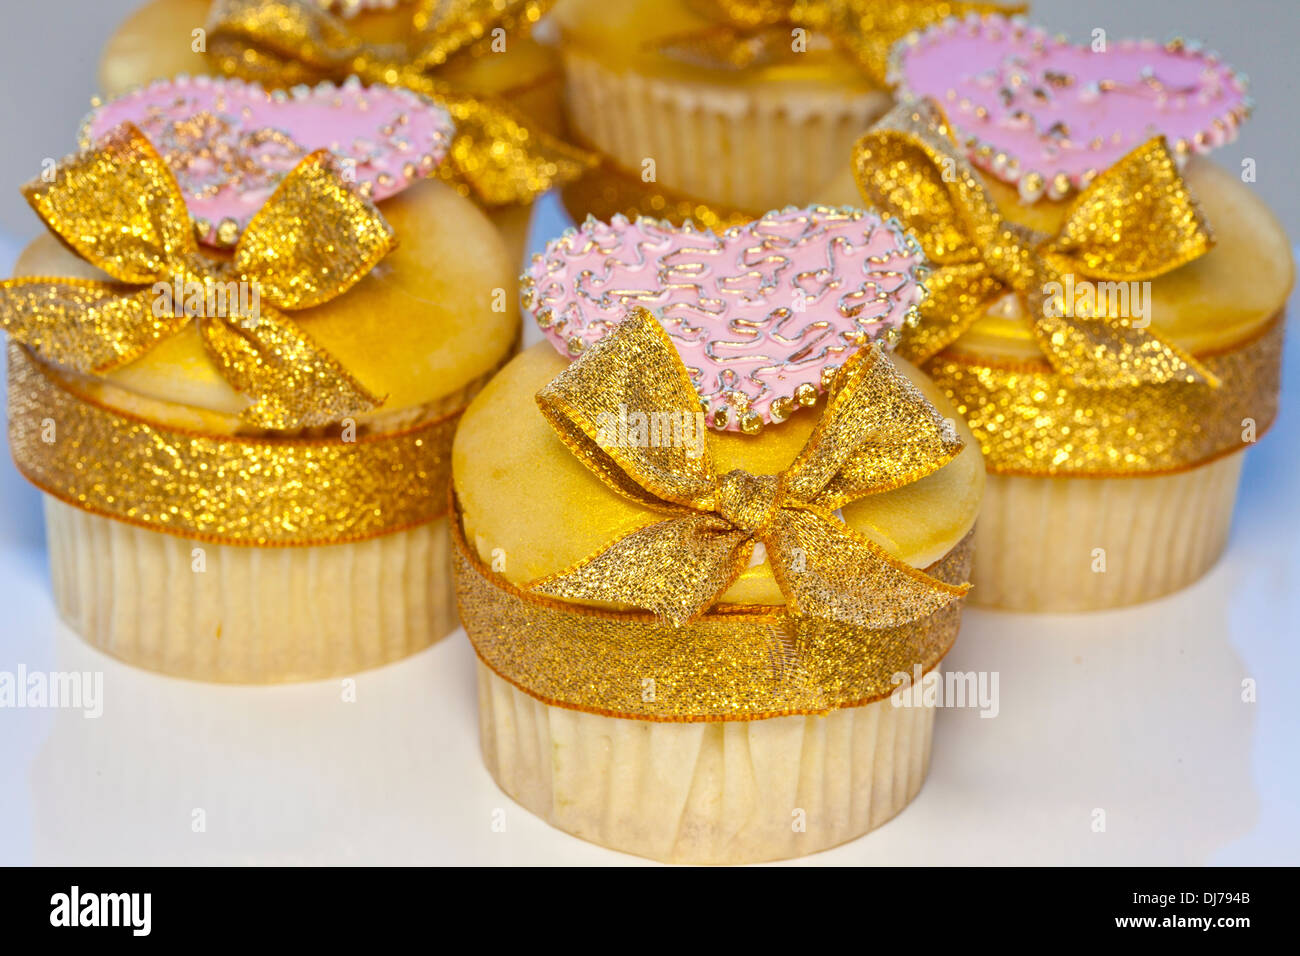 Cupcakes decorated with golden icing and bows also pink hearts. - Stock Image